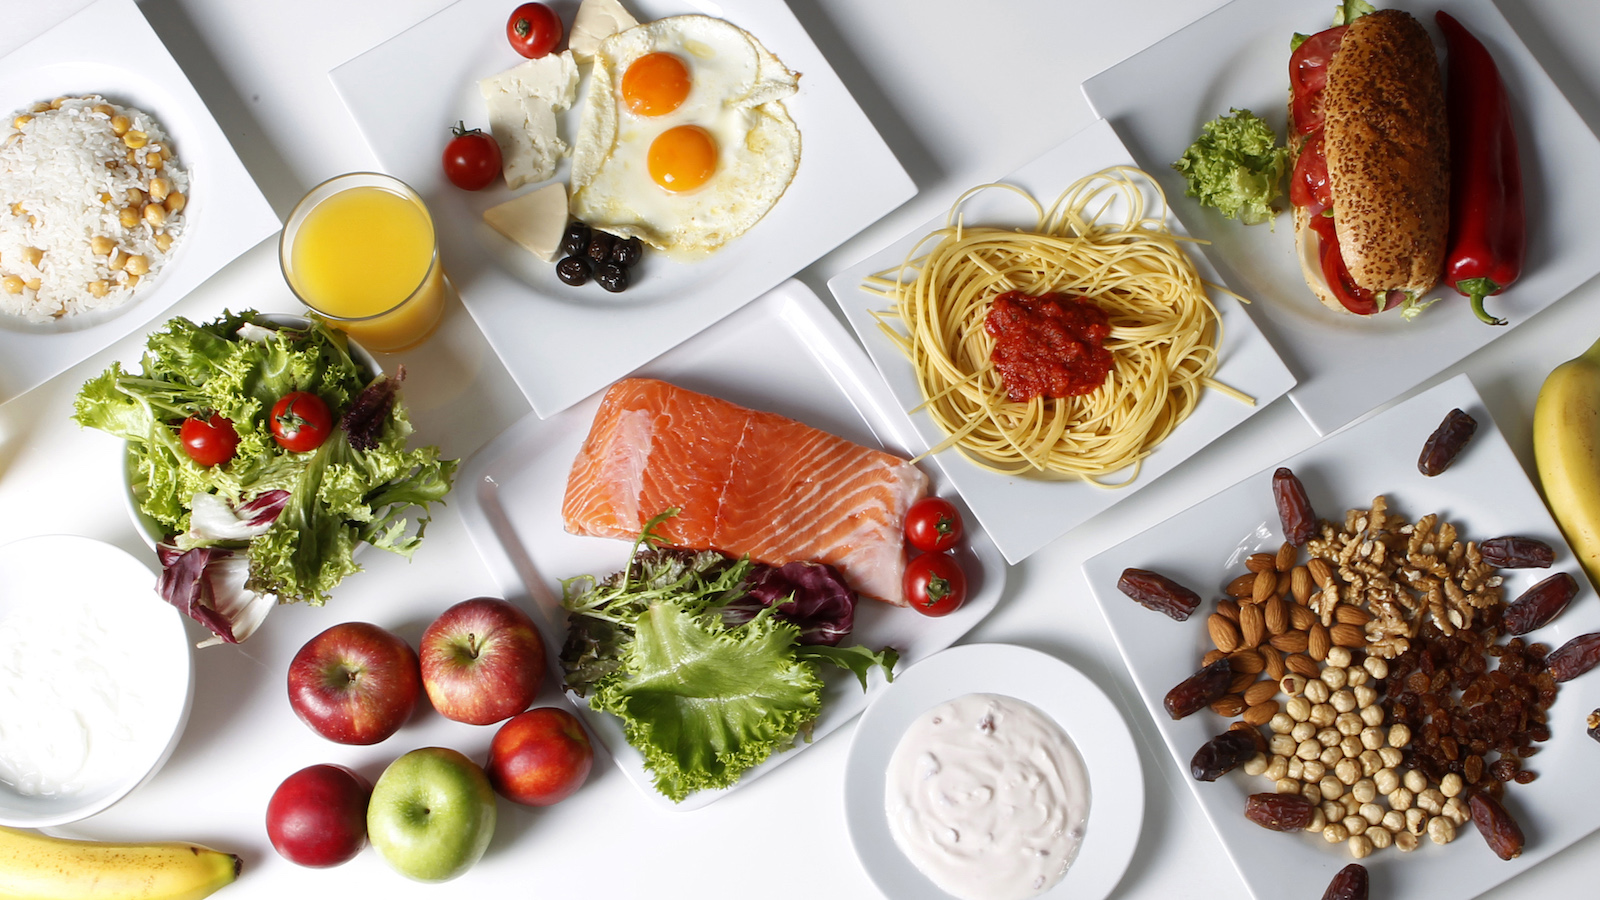 does dieting help lose weight